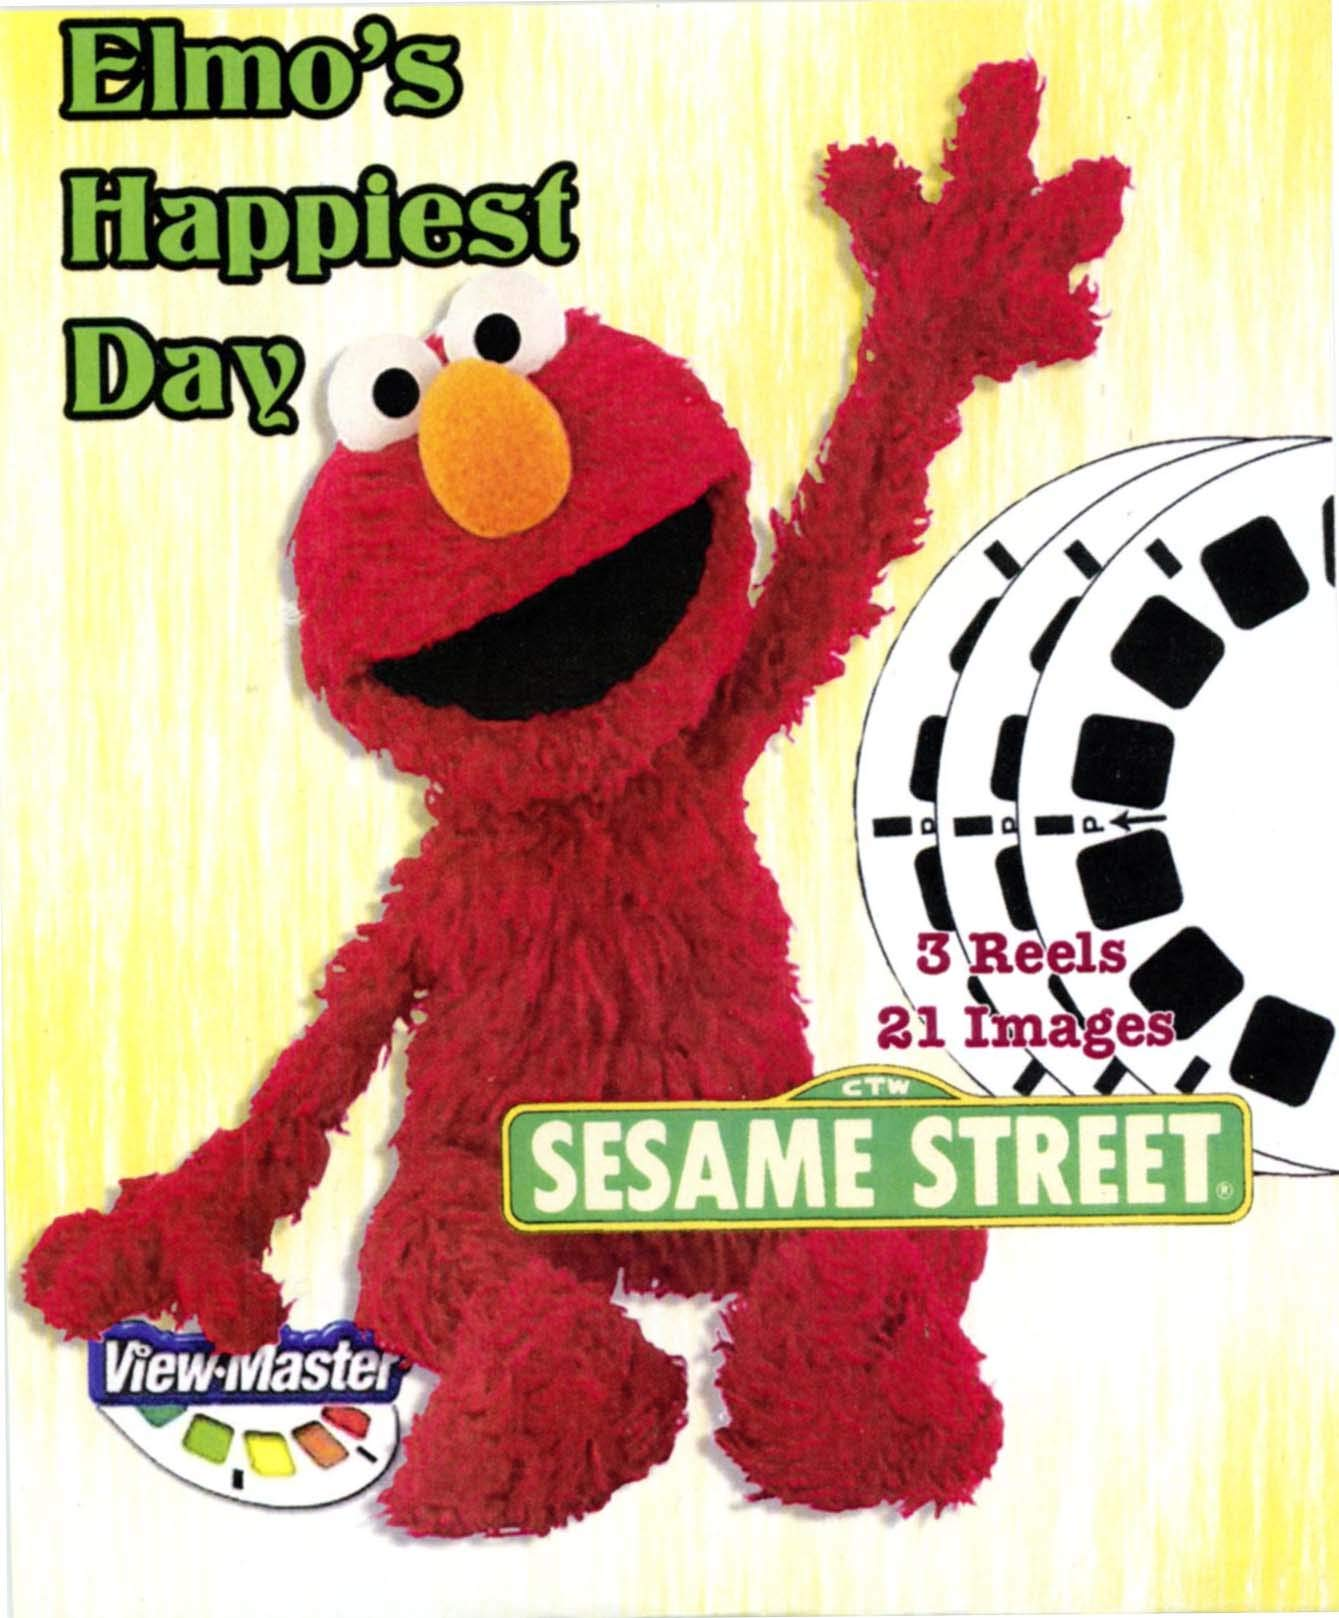 Sesame Elmo's Happiest Day - Classic ViewMaster 3 Reel Set - 21 3D Images - Elmo, Oscar, Grover by 3Dstereo ViewMaster